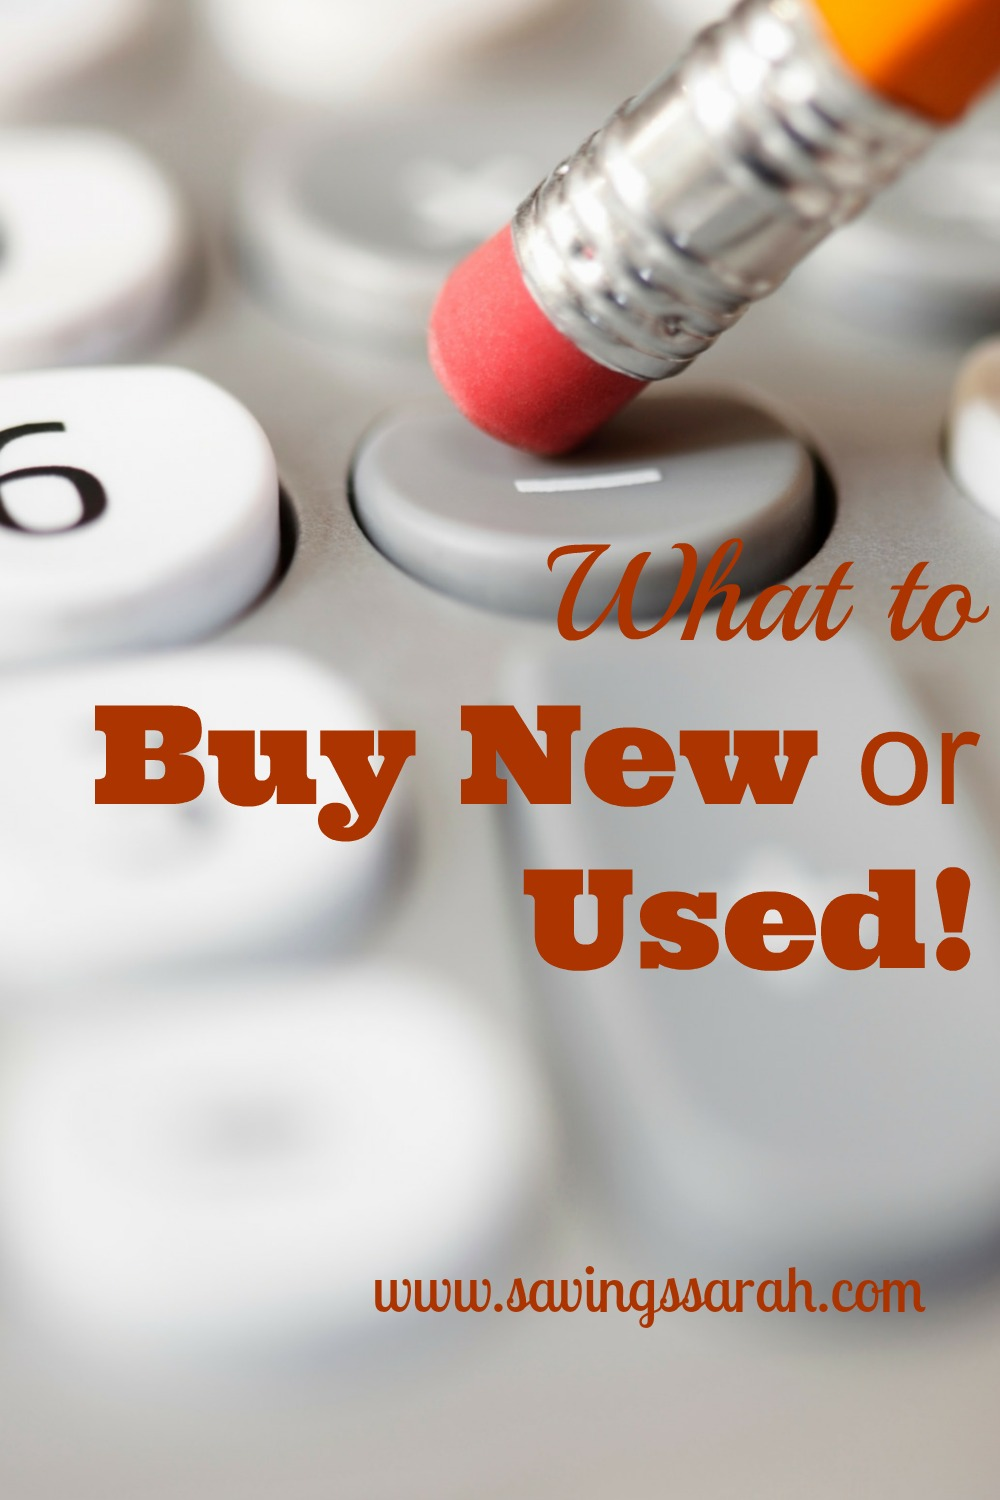 What to Buy New or Used!